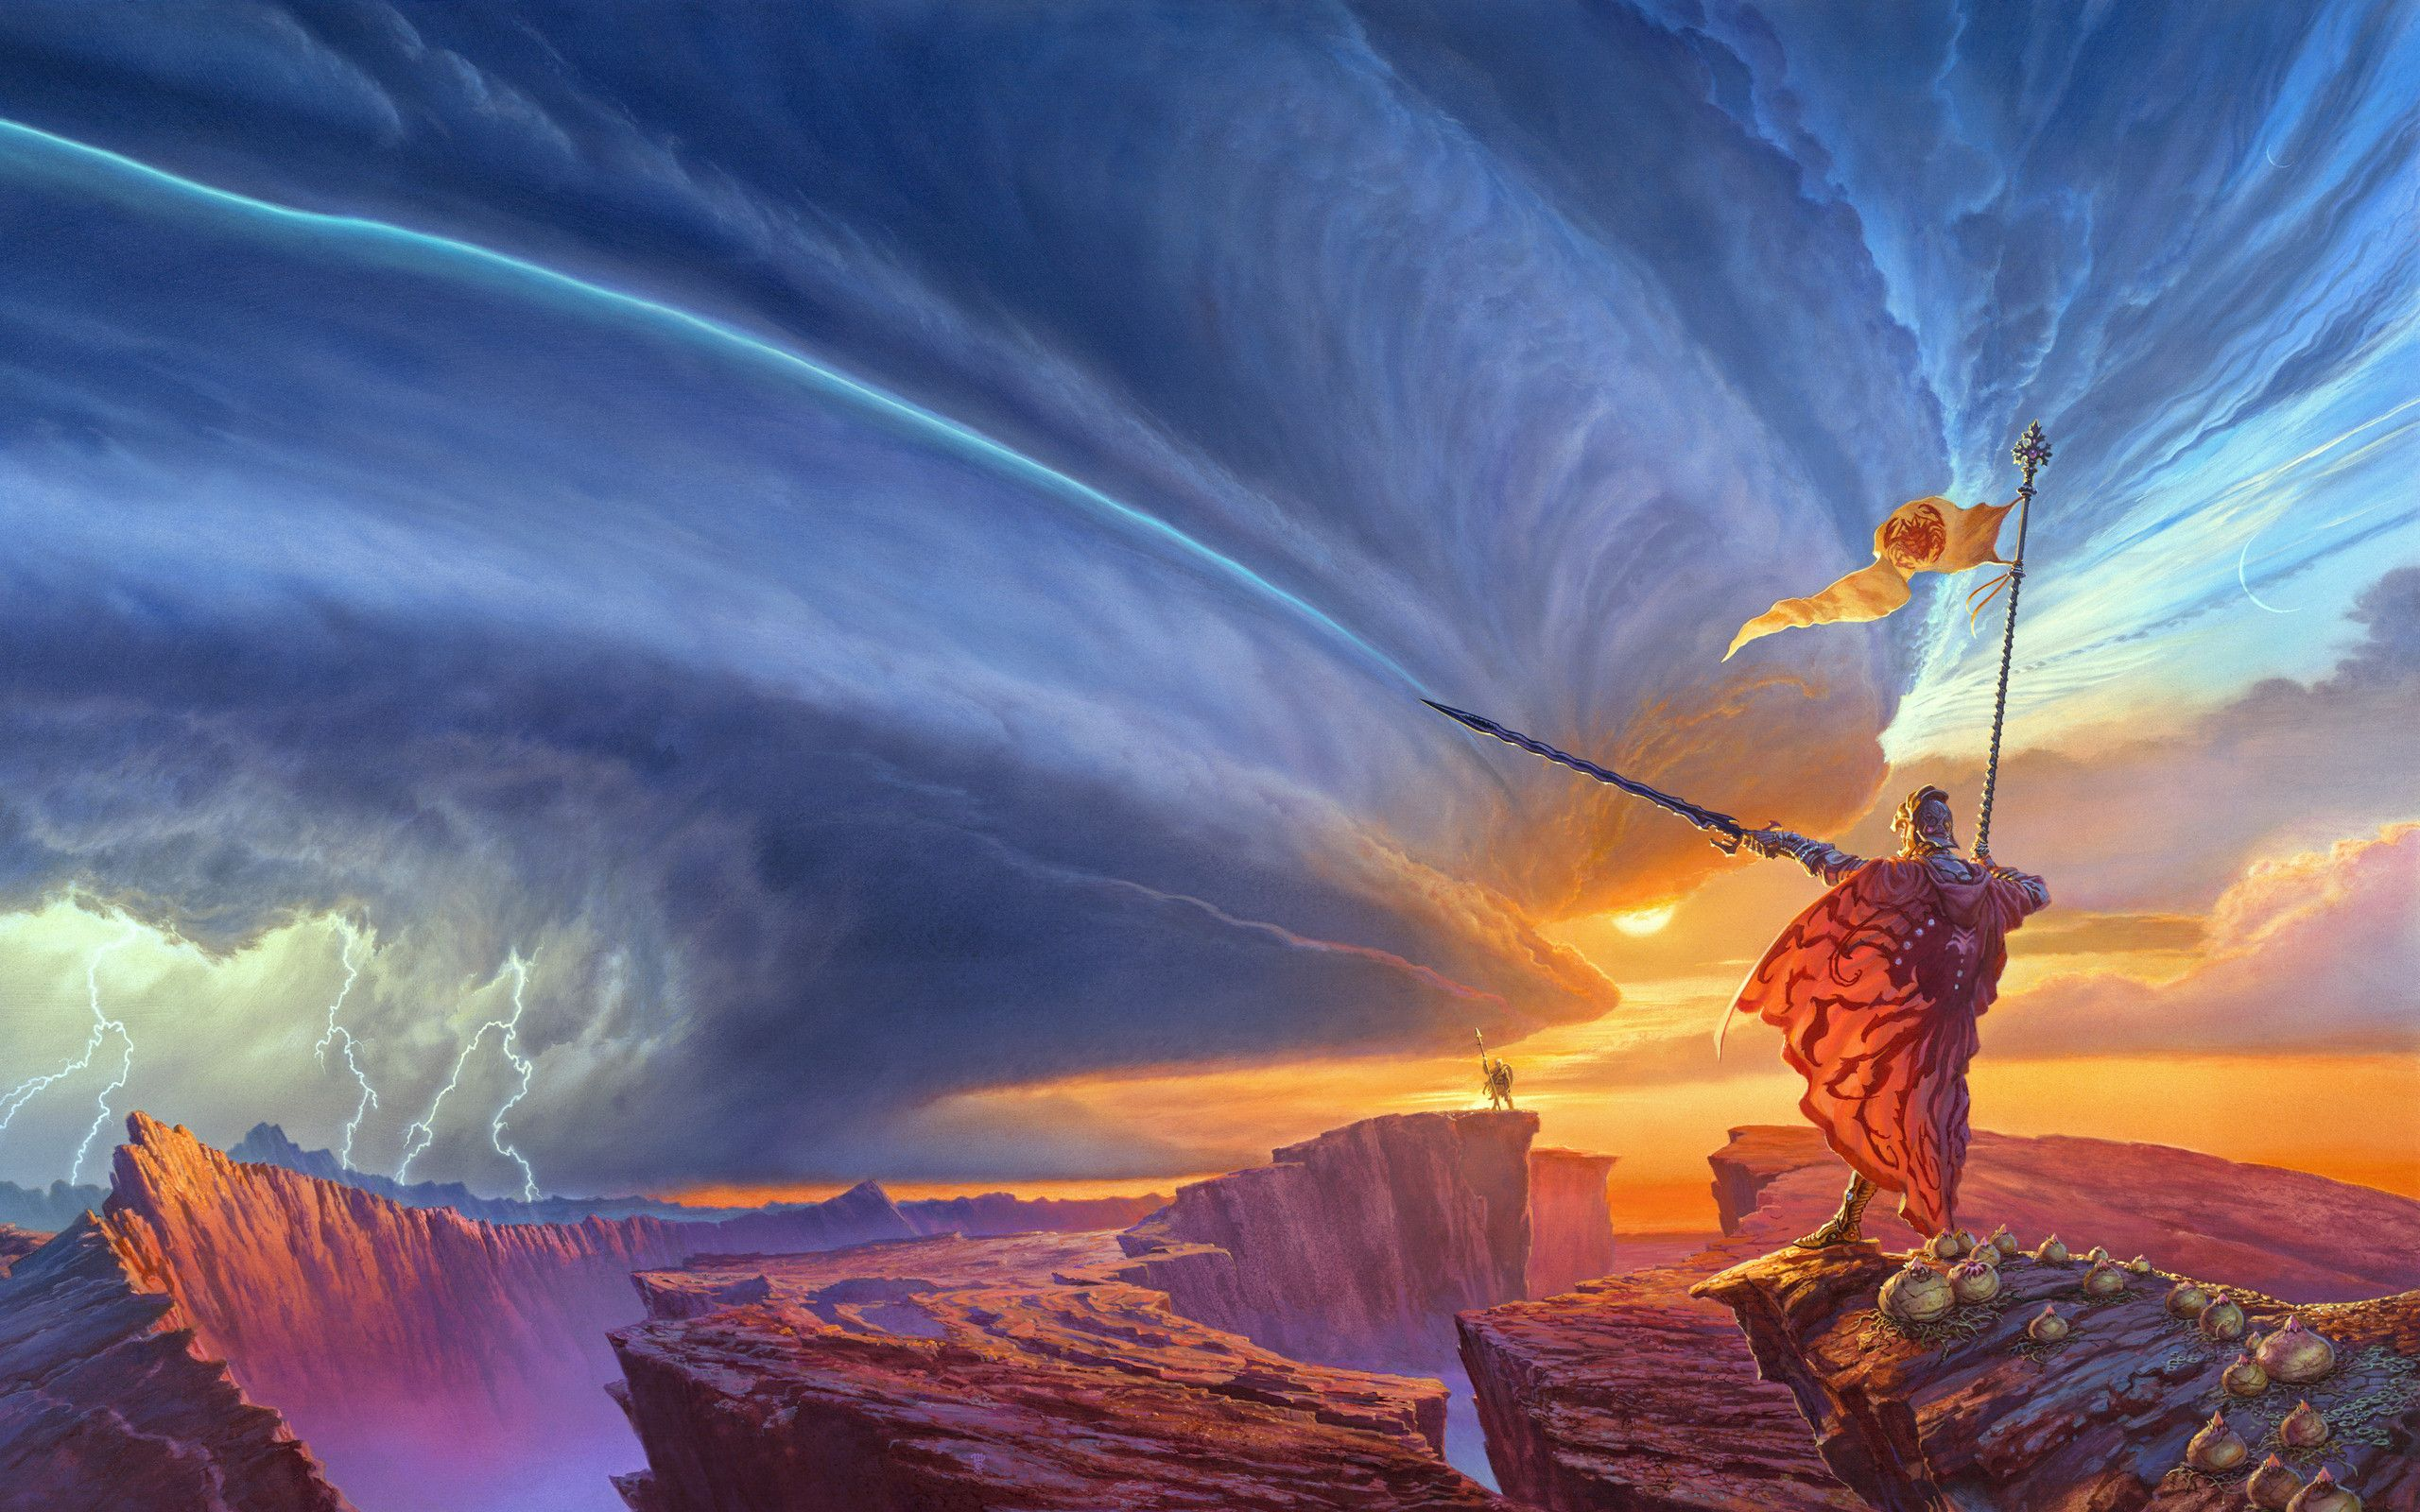 Cover Art By Michael Whelan For The Book The Way Of Kings By Brandon Sanderson Paysage Fantastique Art Fantastique Paysage Grandiose